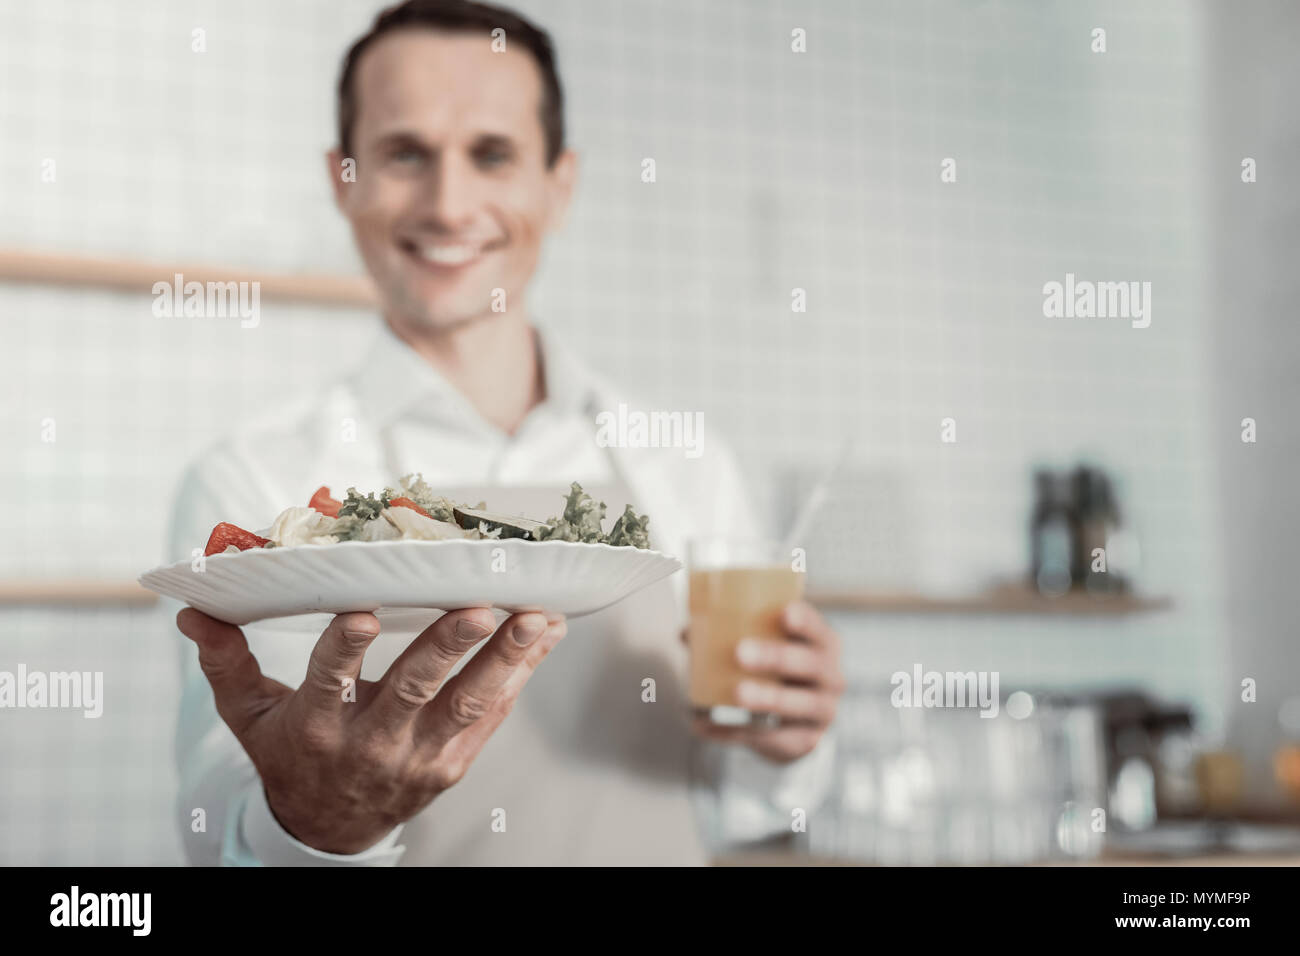 Focused photo on male hand that demonstrating salad - Stock Image